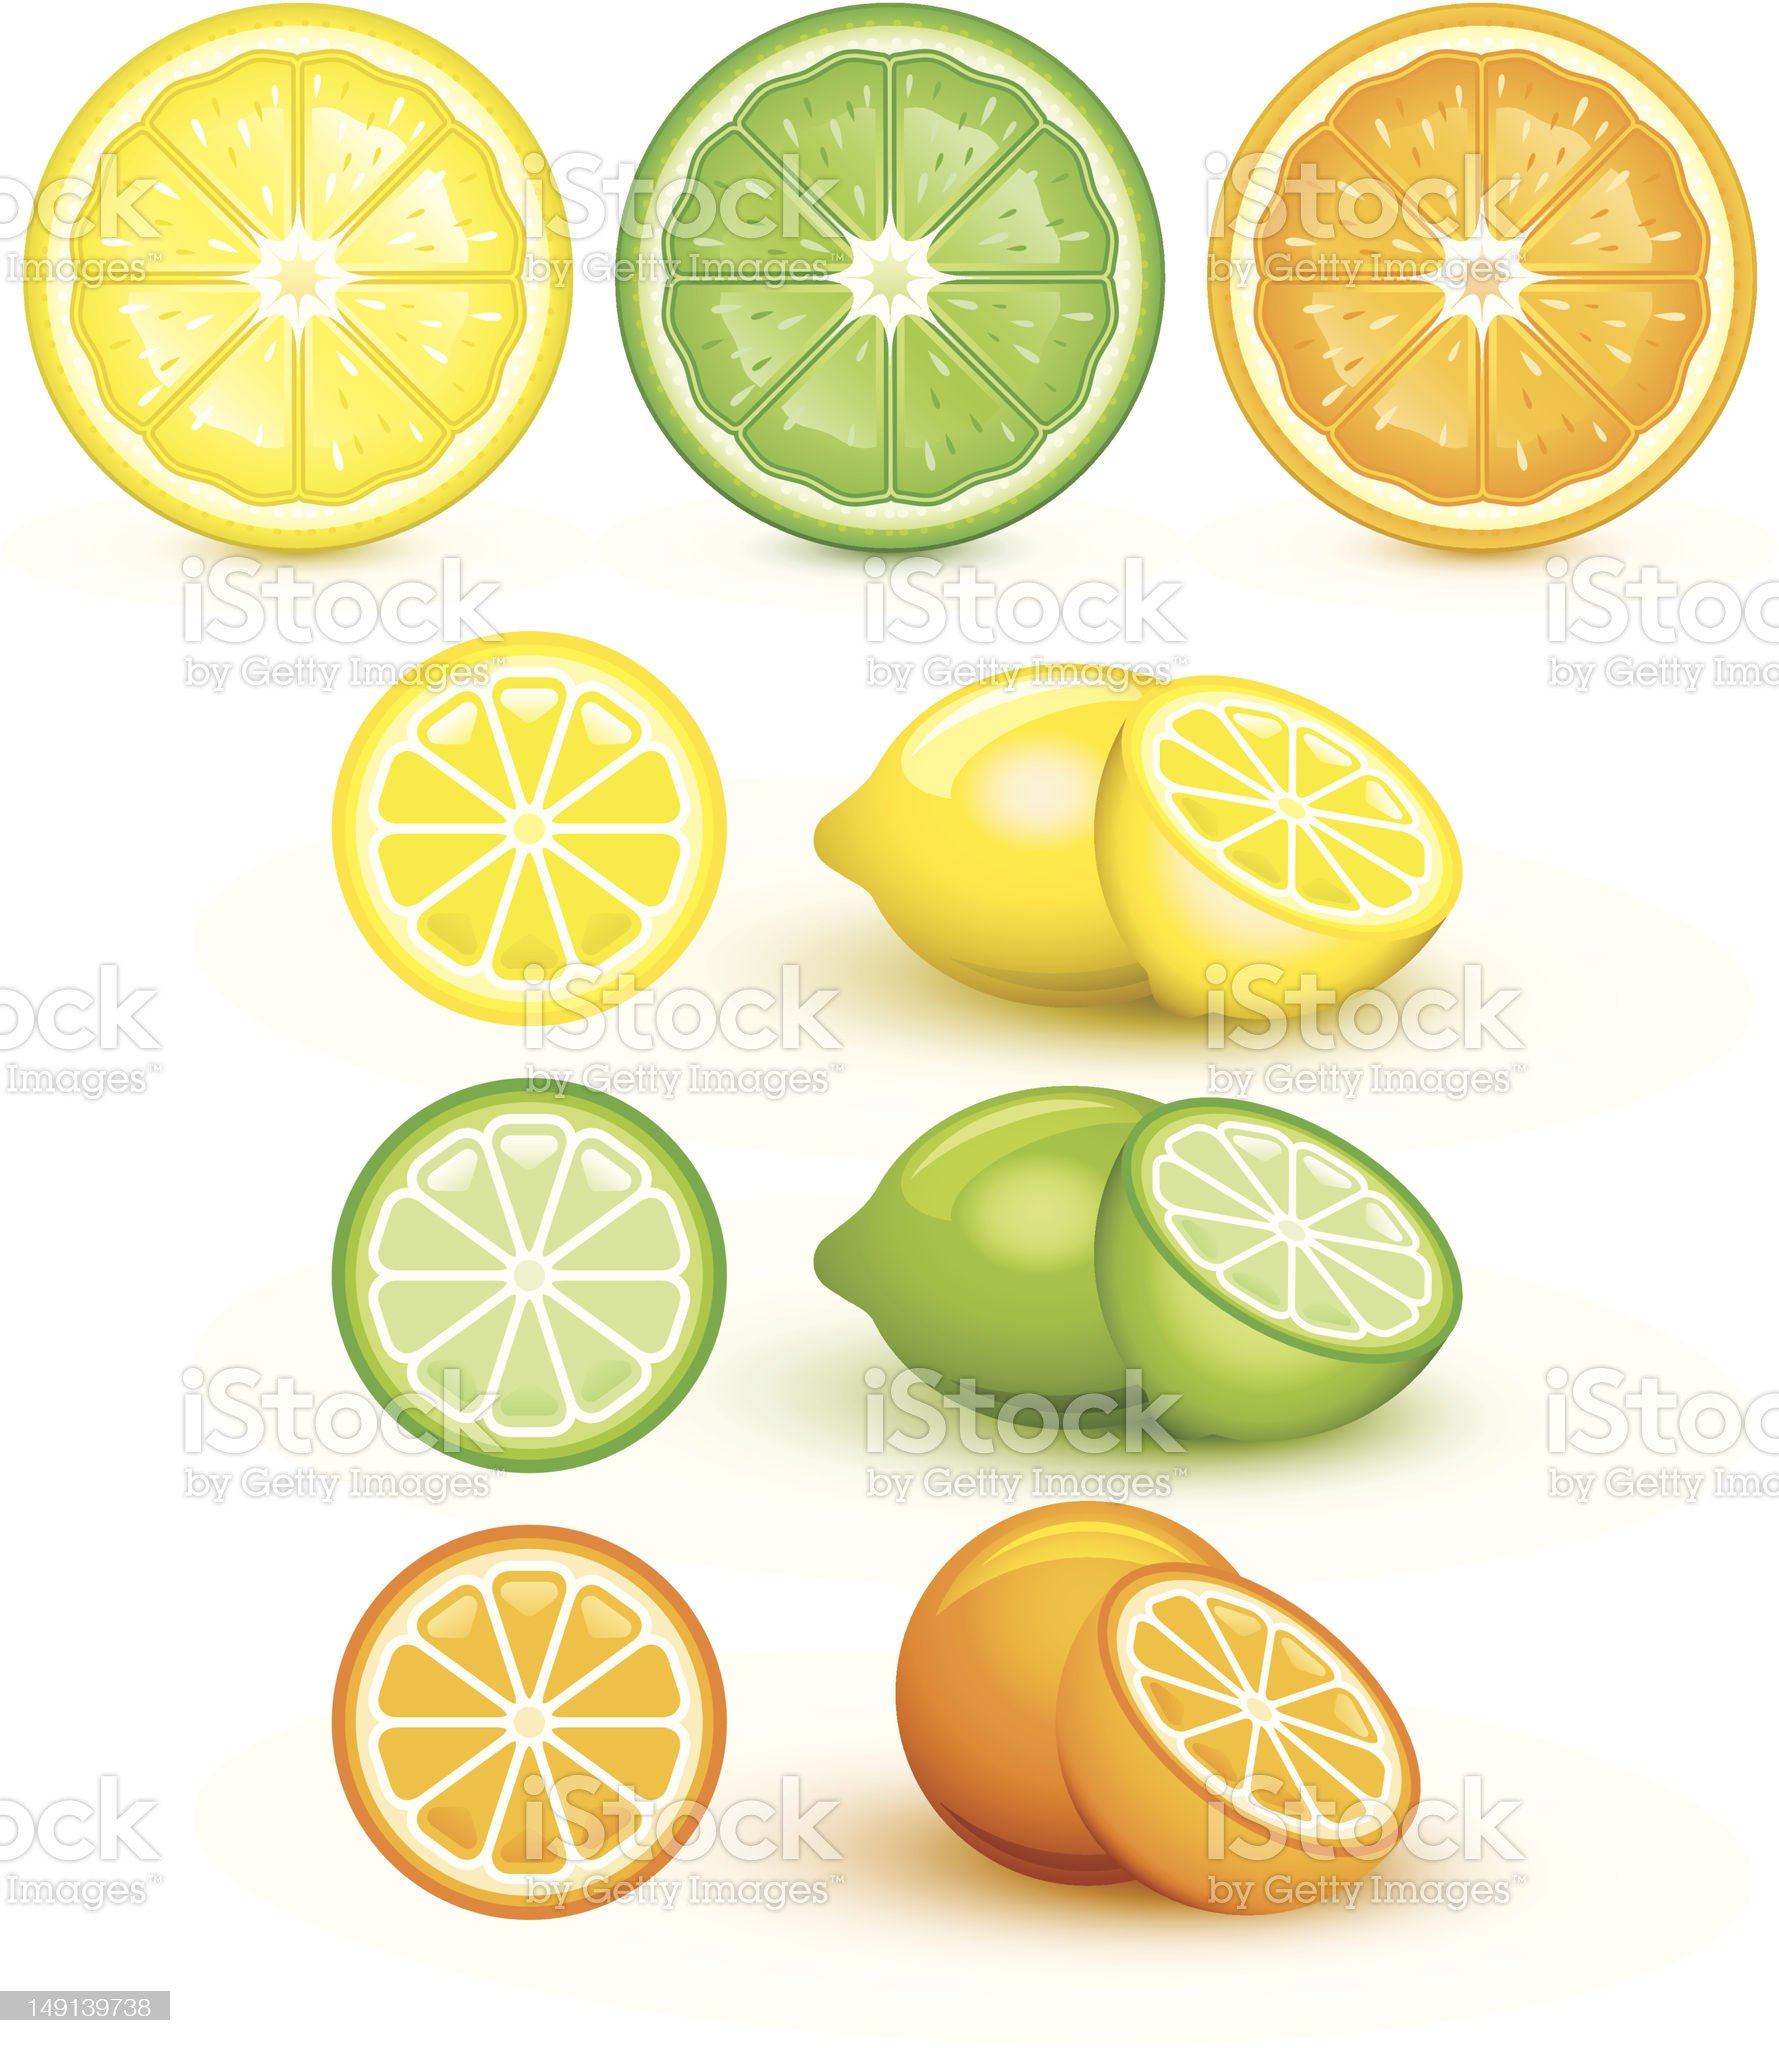 Lemon, lime, and orange royalty-free stock vector art